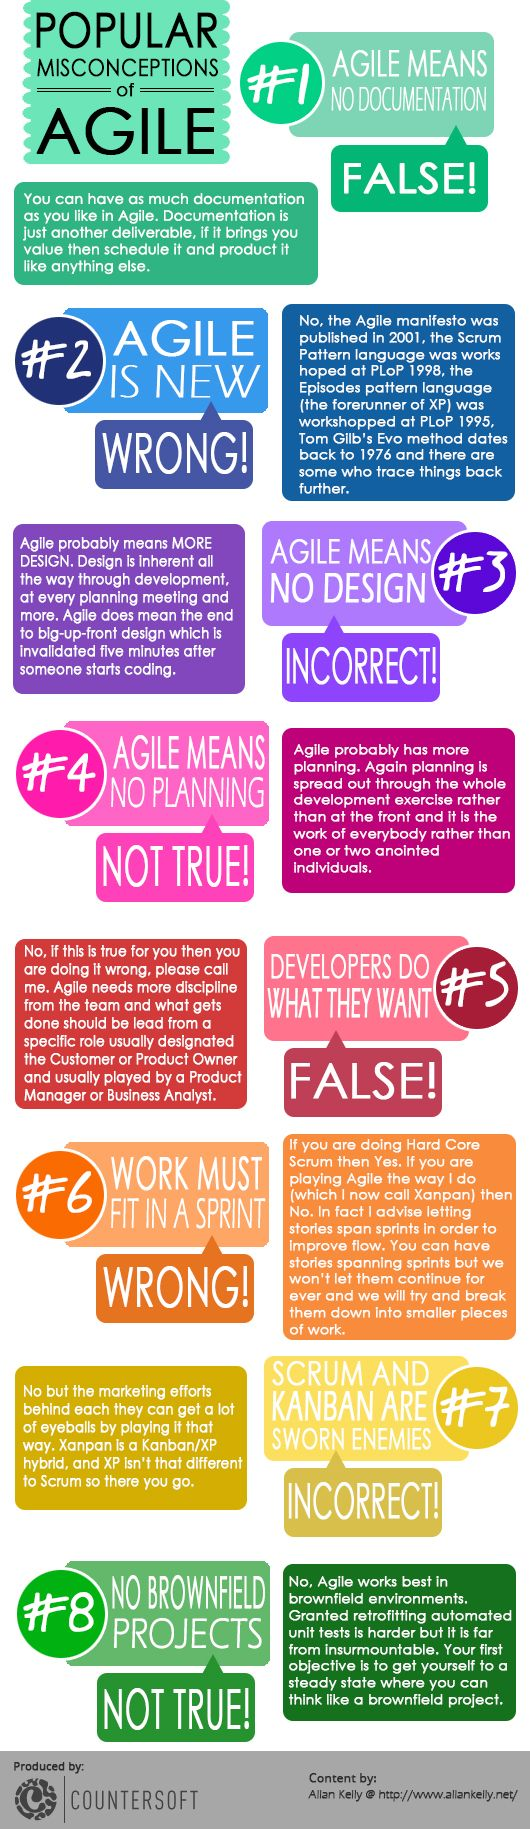 Popular Misconceptions of Agile